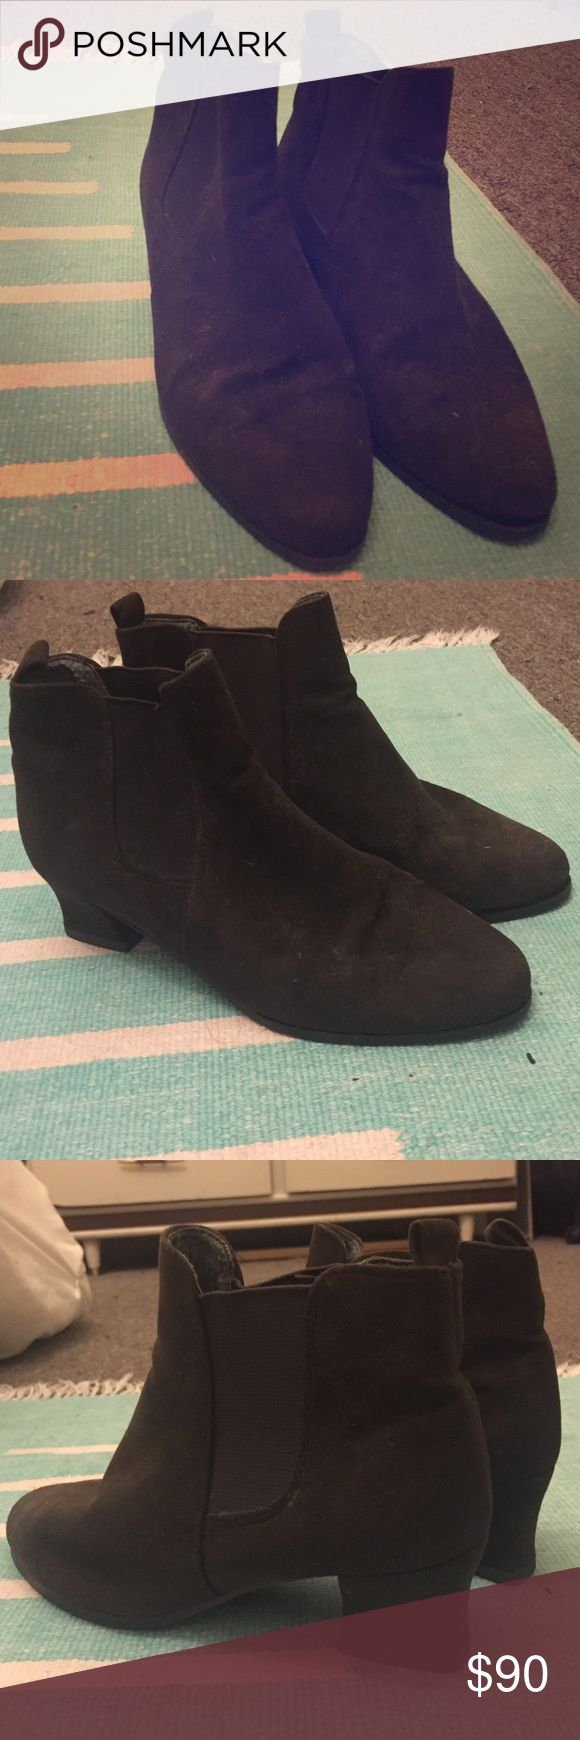 Vintage booties! Swede bootie with side elastics, mid heel. marks & spencer Shoes Ankle Boots & Booties